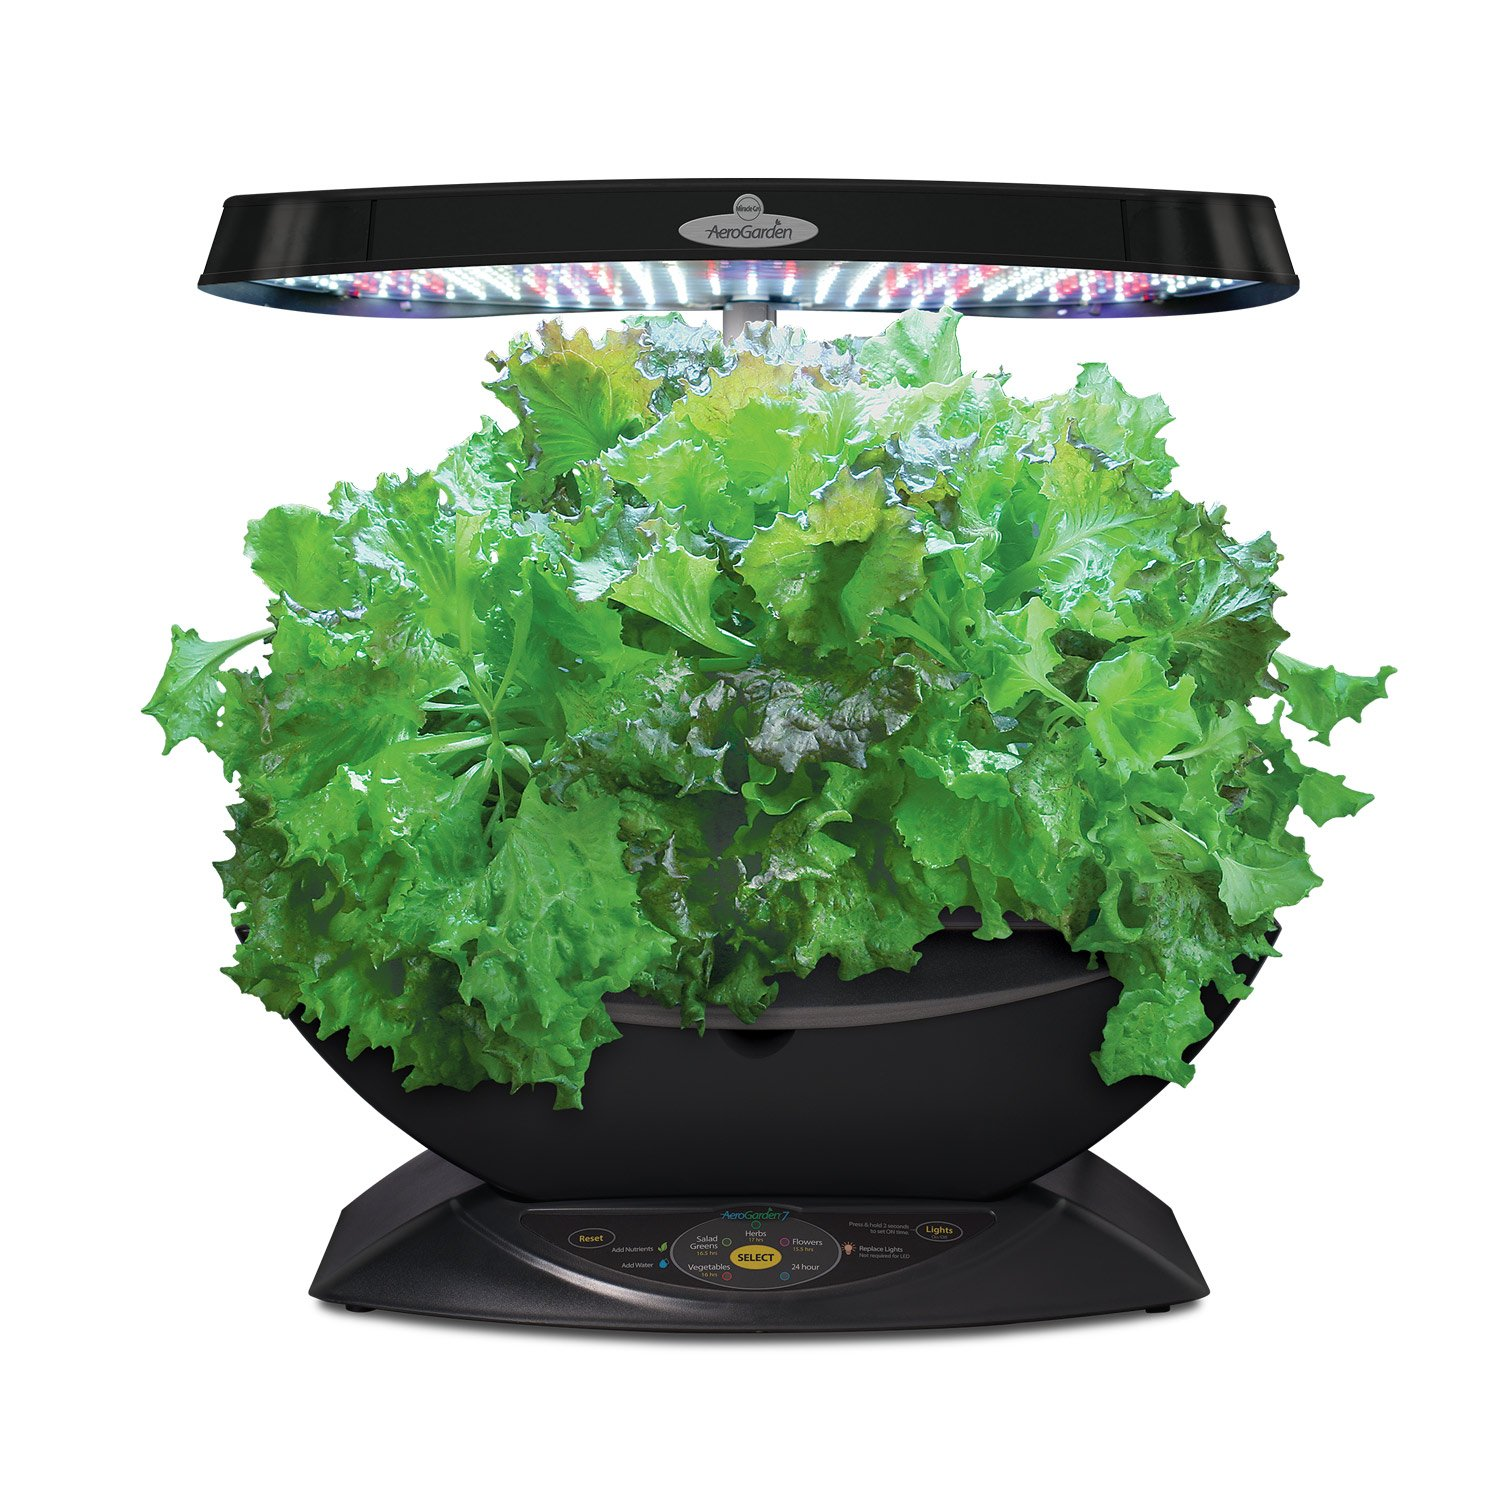 Amazoncom Miracle Gro AeroGarden 7 LED Indoor Garden with